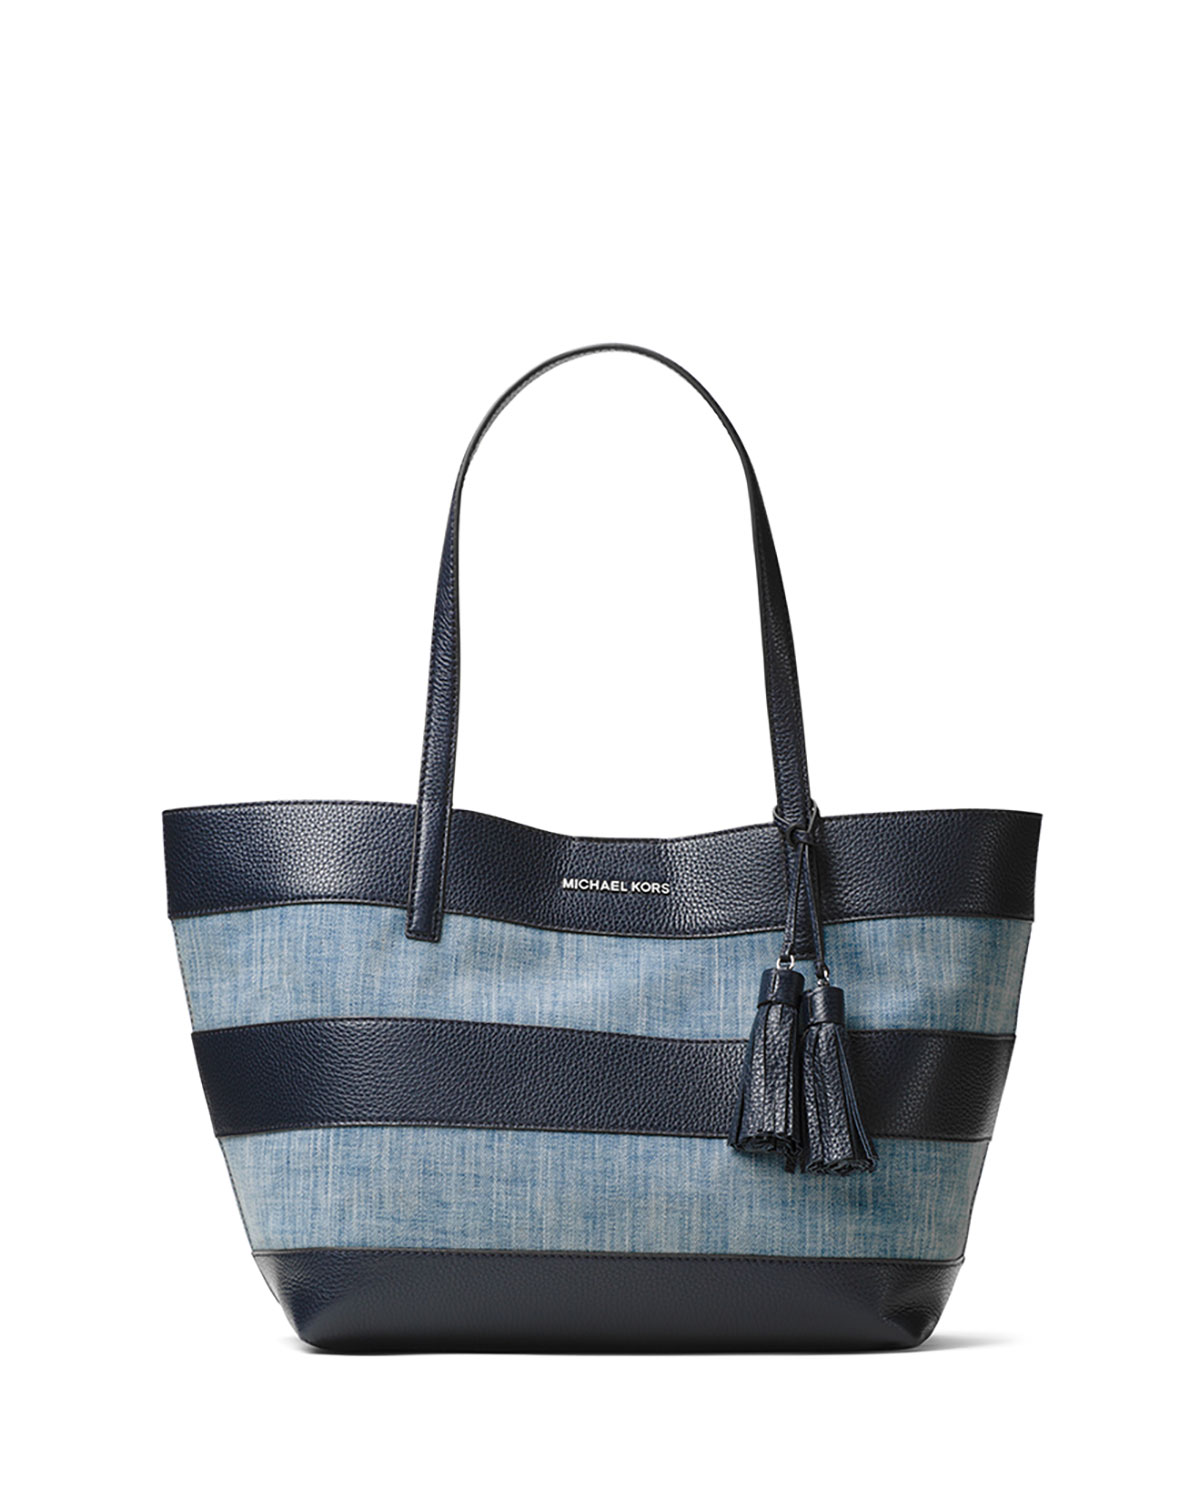 a5d2b3231c1cc6 MICHAEL Michael Kors Large Striped Canvas Tote Bag, Washed Denim ...